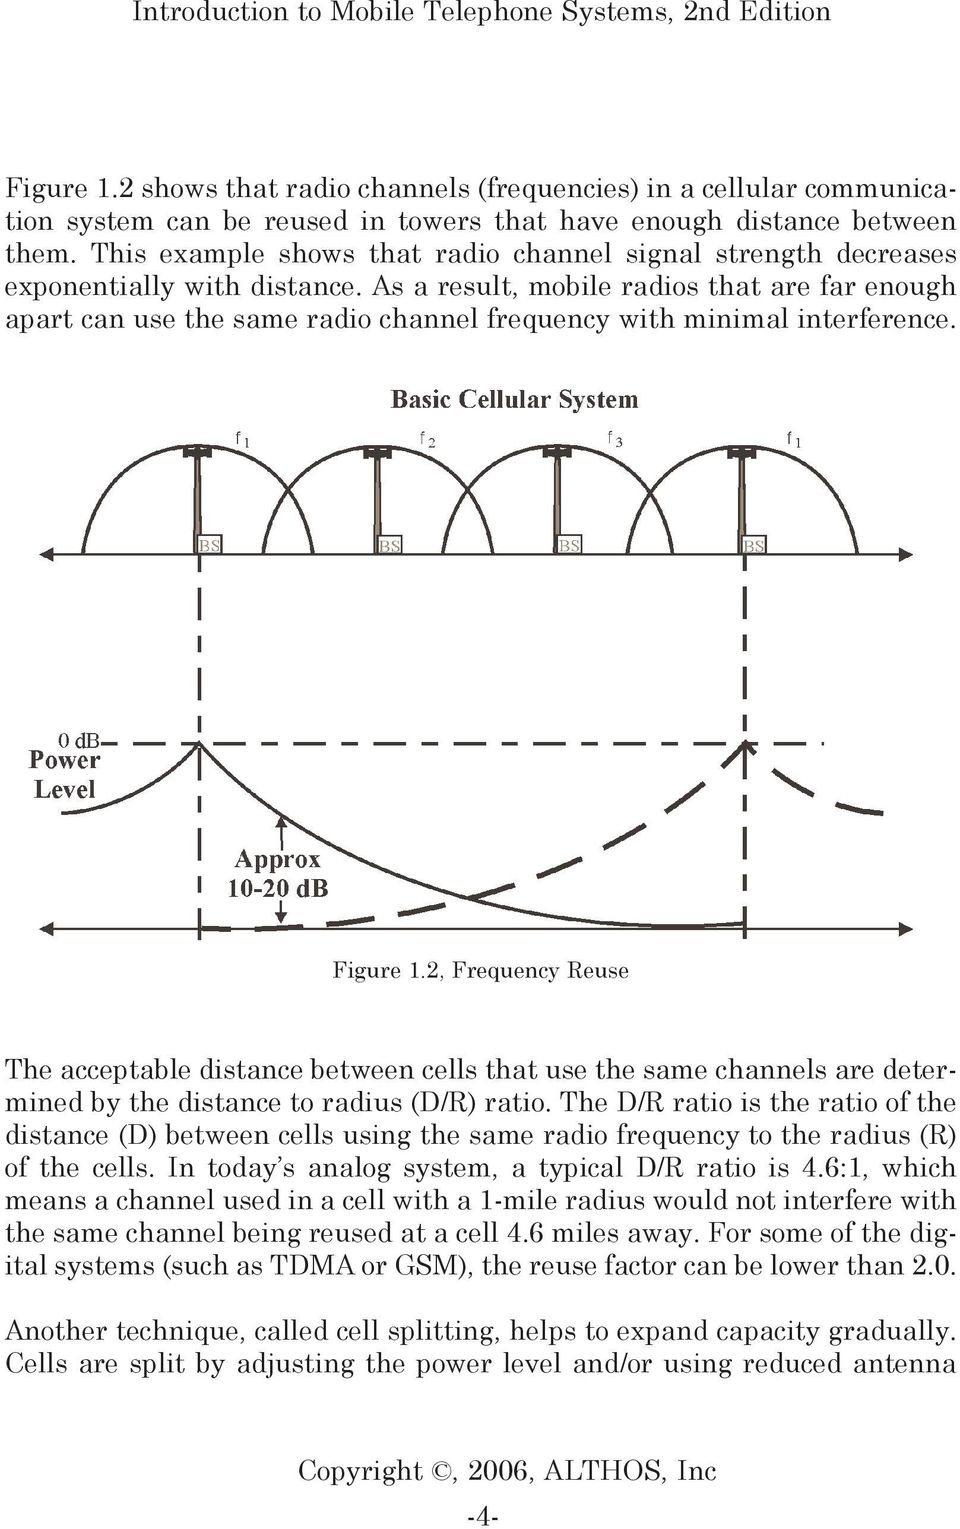 As a result, mobile radios that are far enough apart can use the same radio channel frequency with minimal interference. Figure 1.